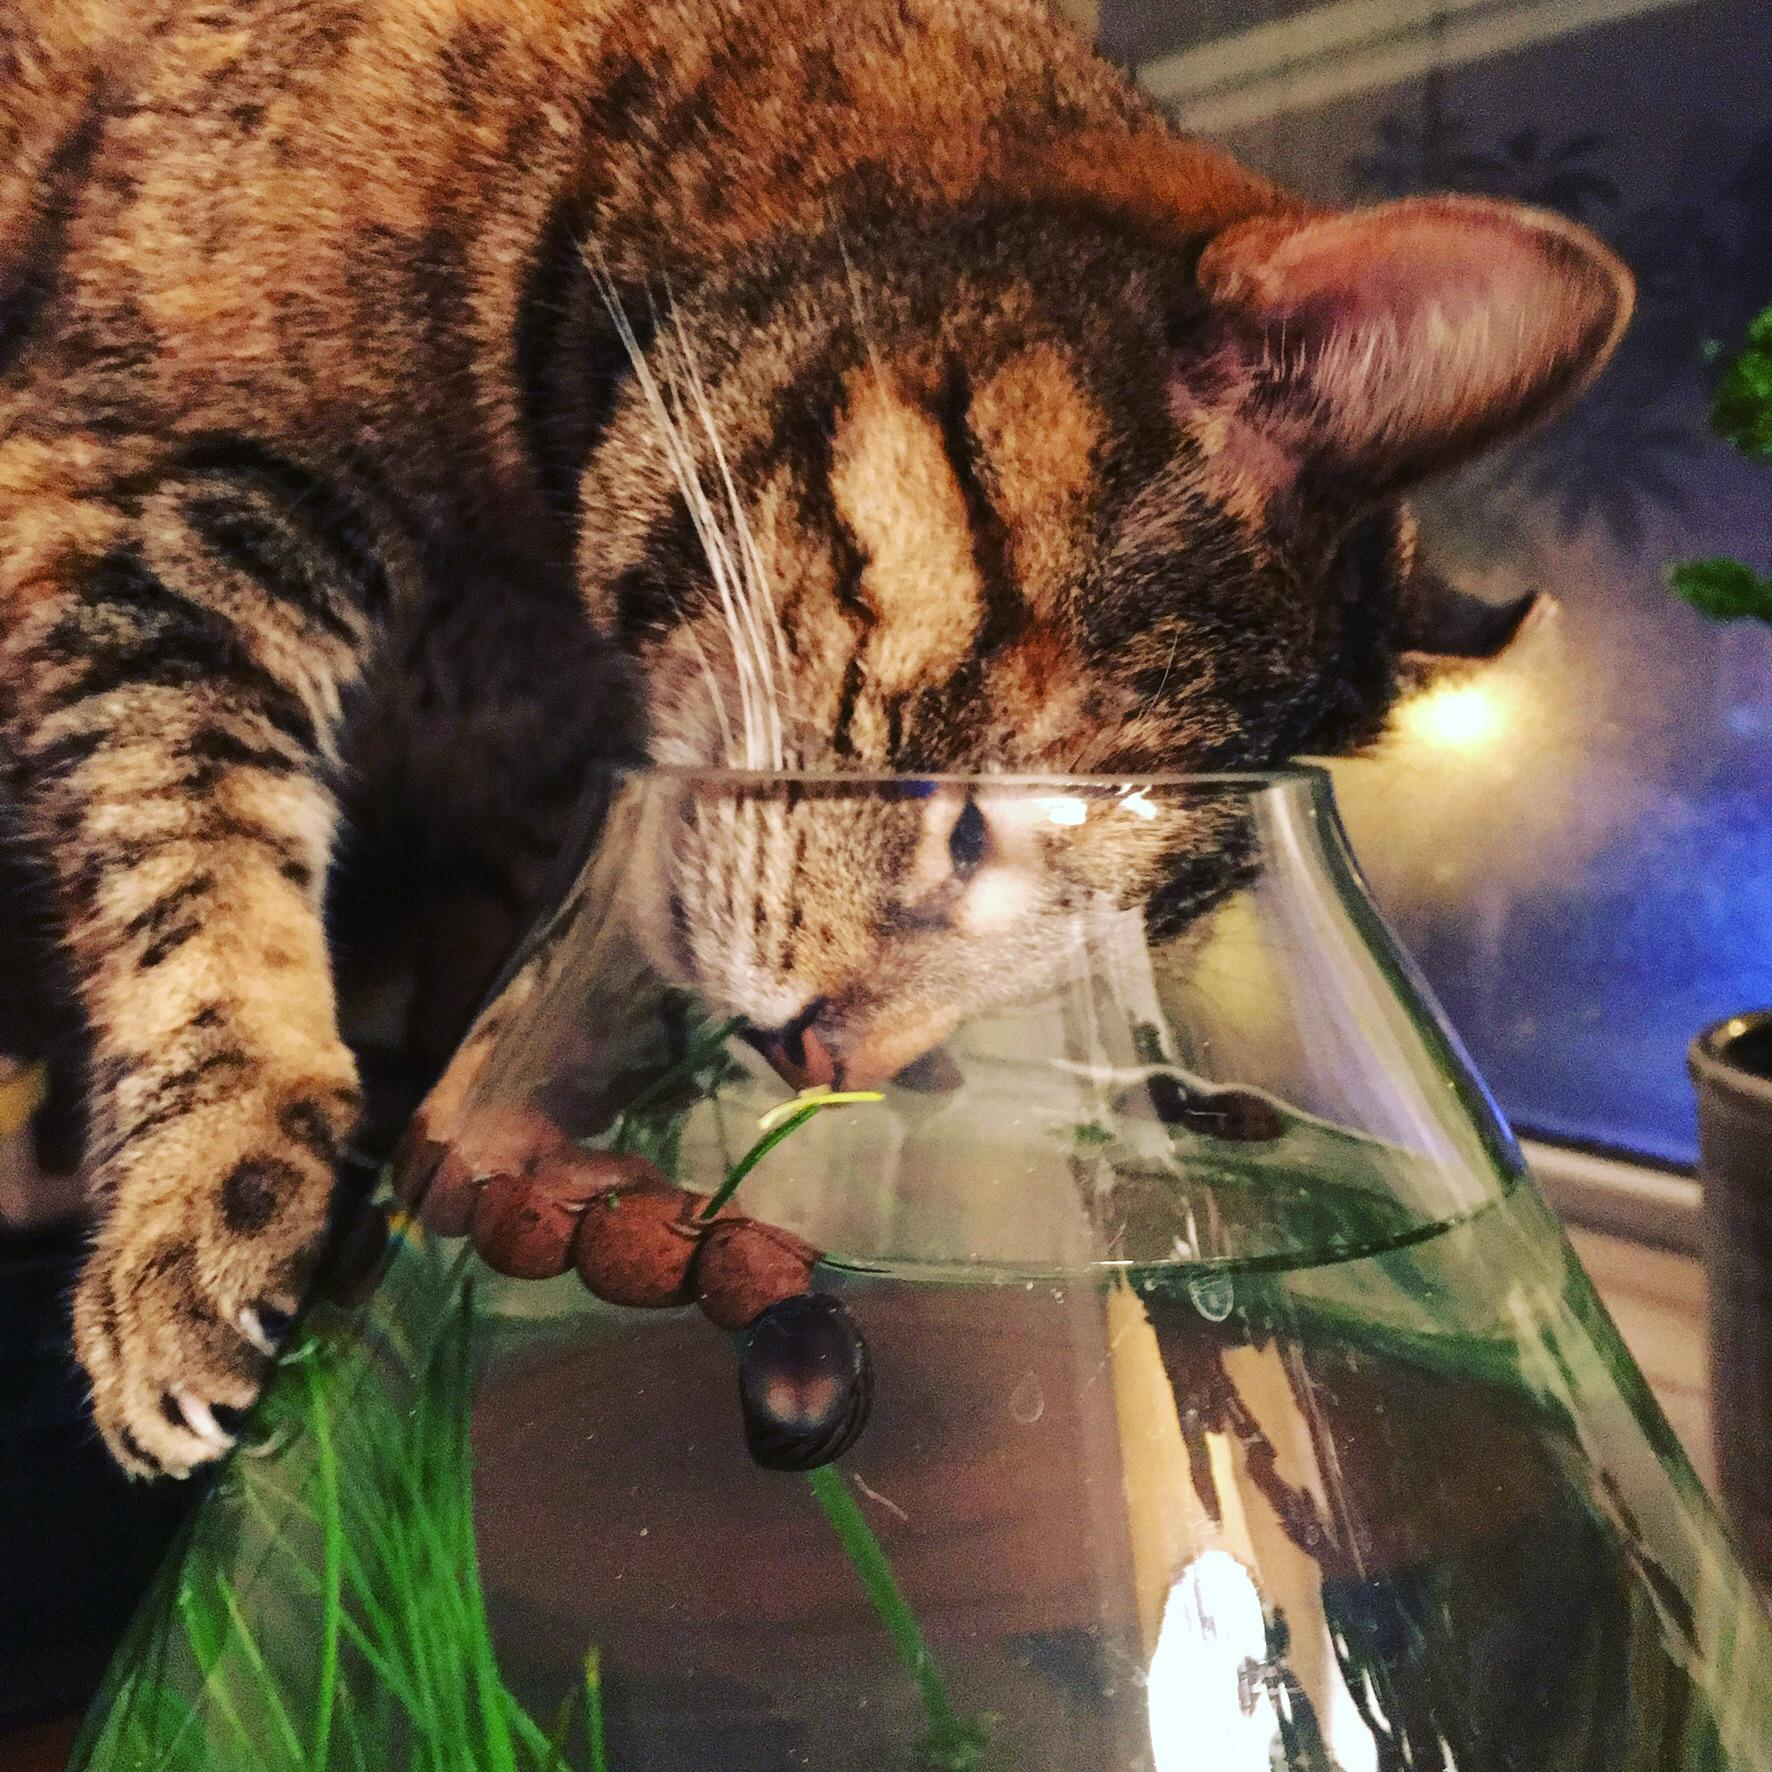 must touch tha fishy